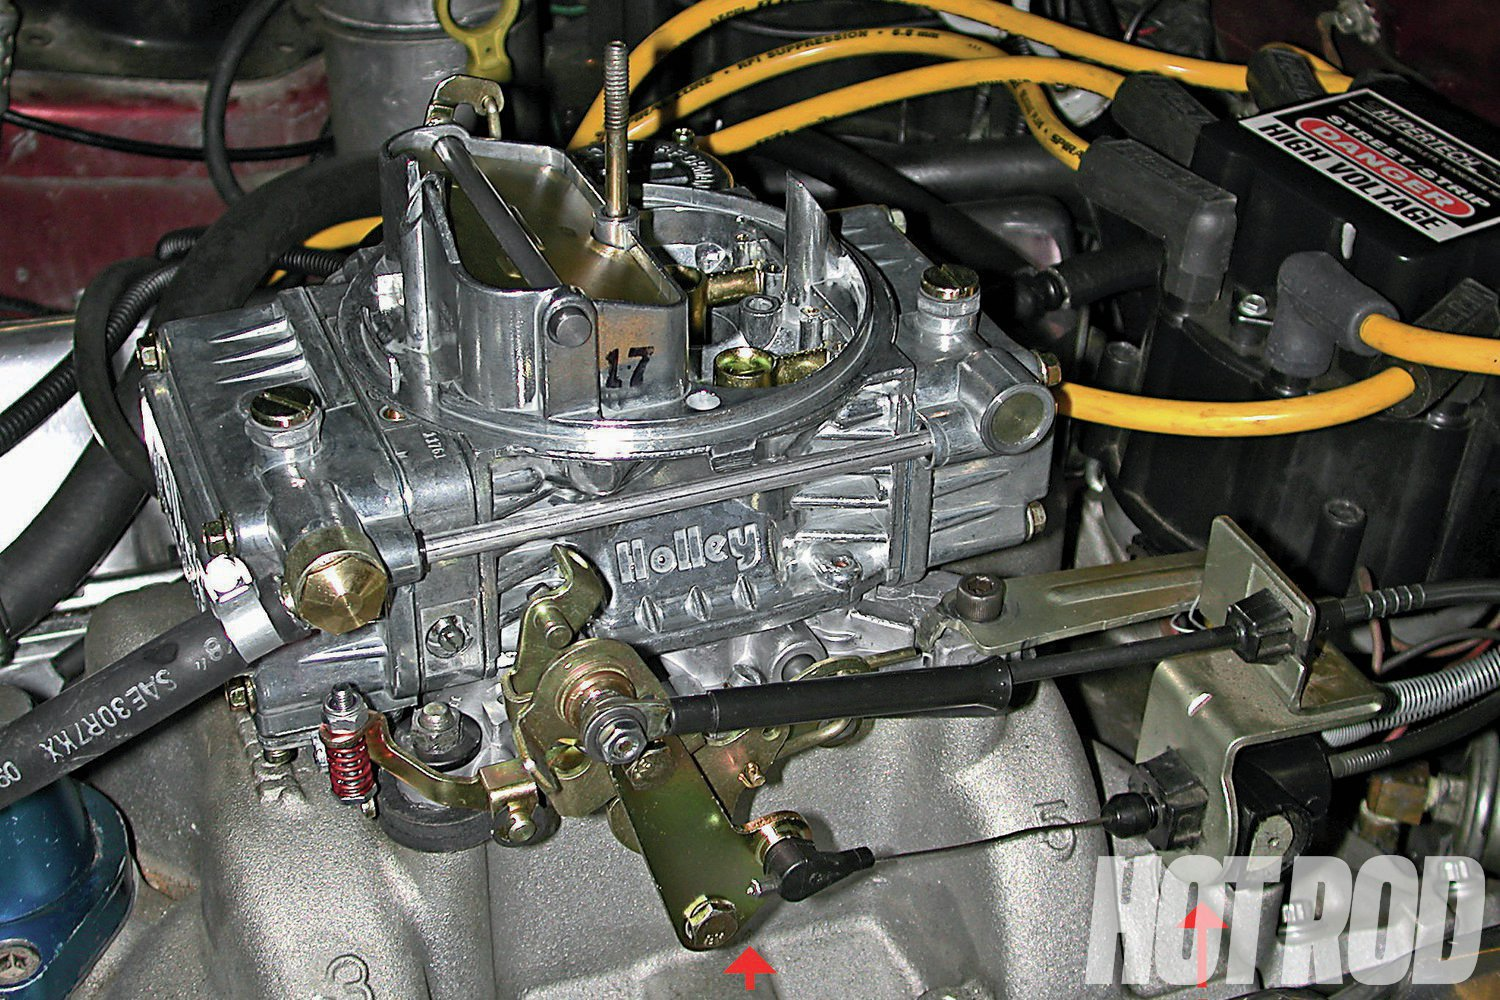 To attach a GM TV cable to most modern 4150/4160 Holley carbs (except some race-only models with cut-down throttle linkage), use Holley cable mounting bracket PN 20-95 (A) plus throttle-arm extension PN 20-121 (B). Both must be used to obtain correct cable geometry. Equivalent TCI parts include PN 376705 (bracket) and PN 376715 (throttle-linkage adapter).